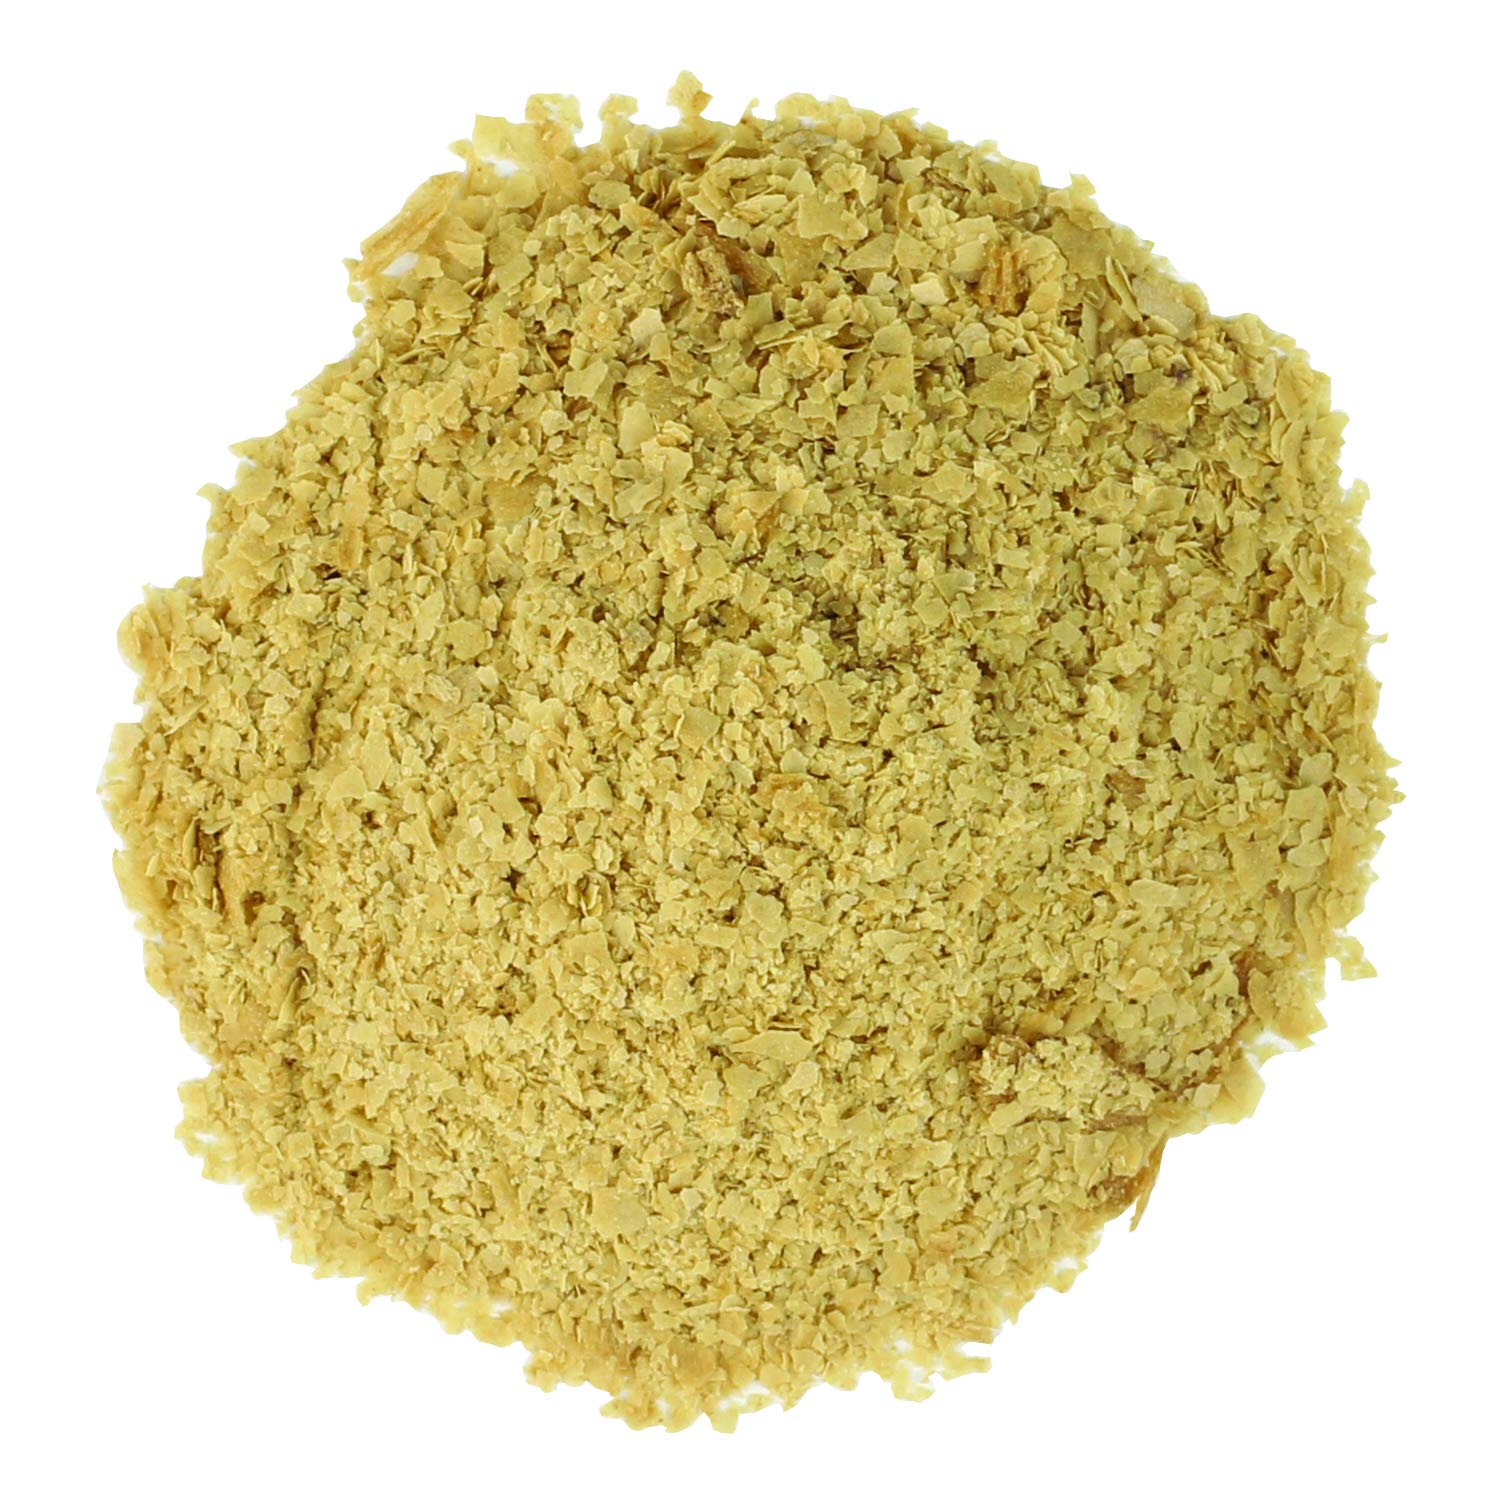 Frontier Co-op Organic Nutritional Yeast Flakes, 1 Pound